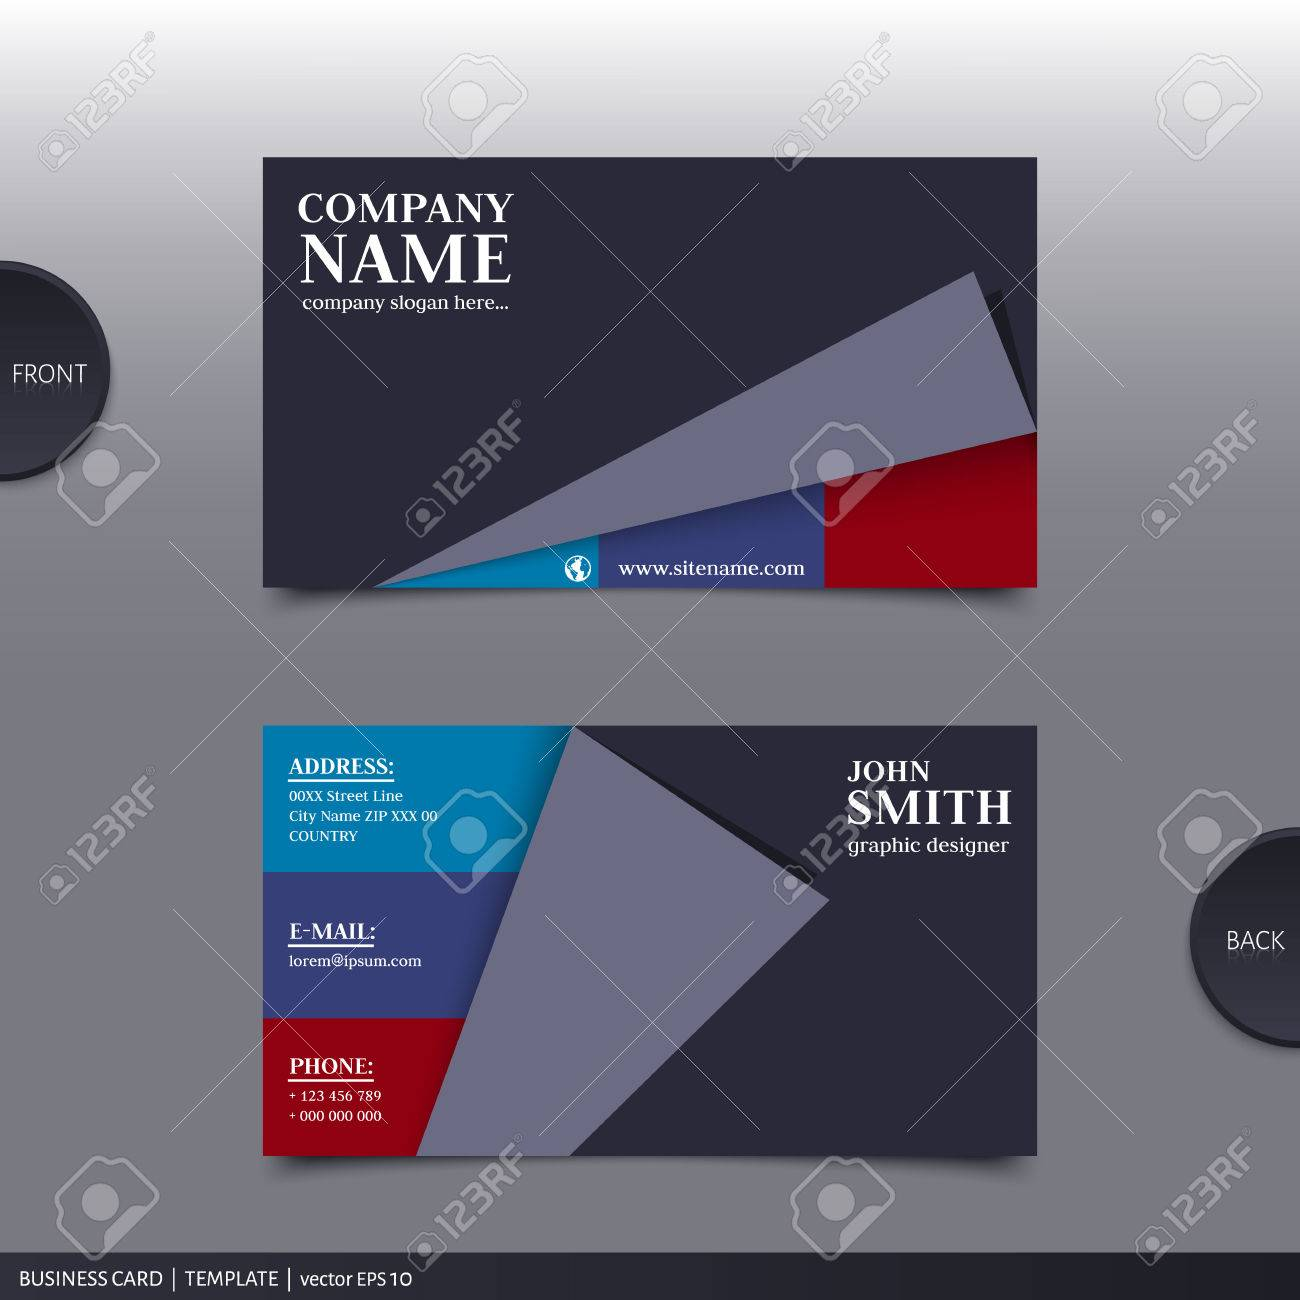 Vector abstract creative business card design template. - 34847827